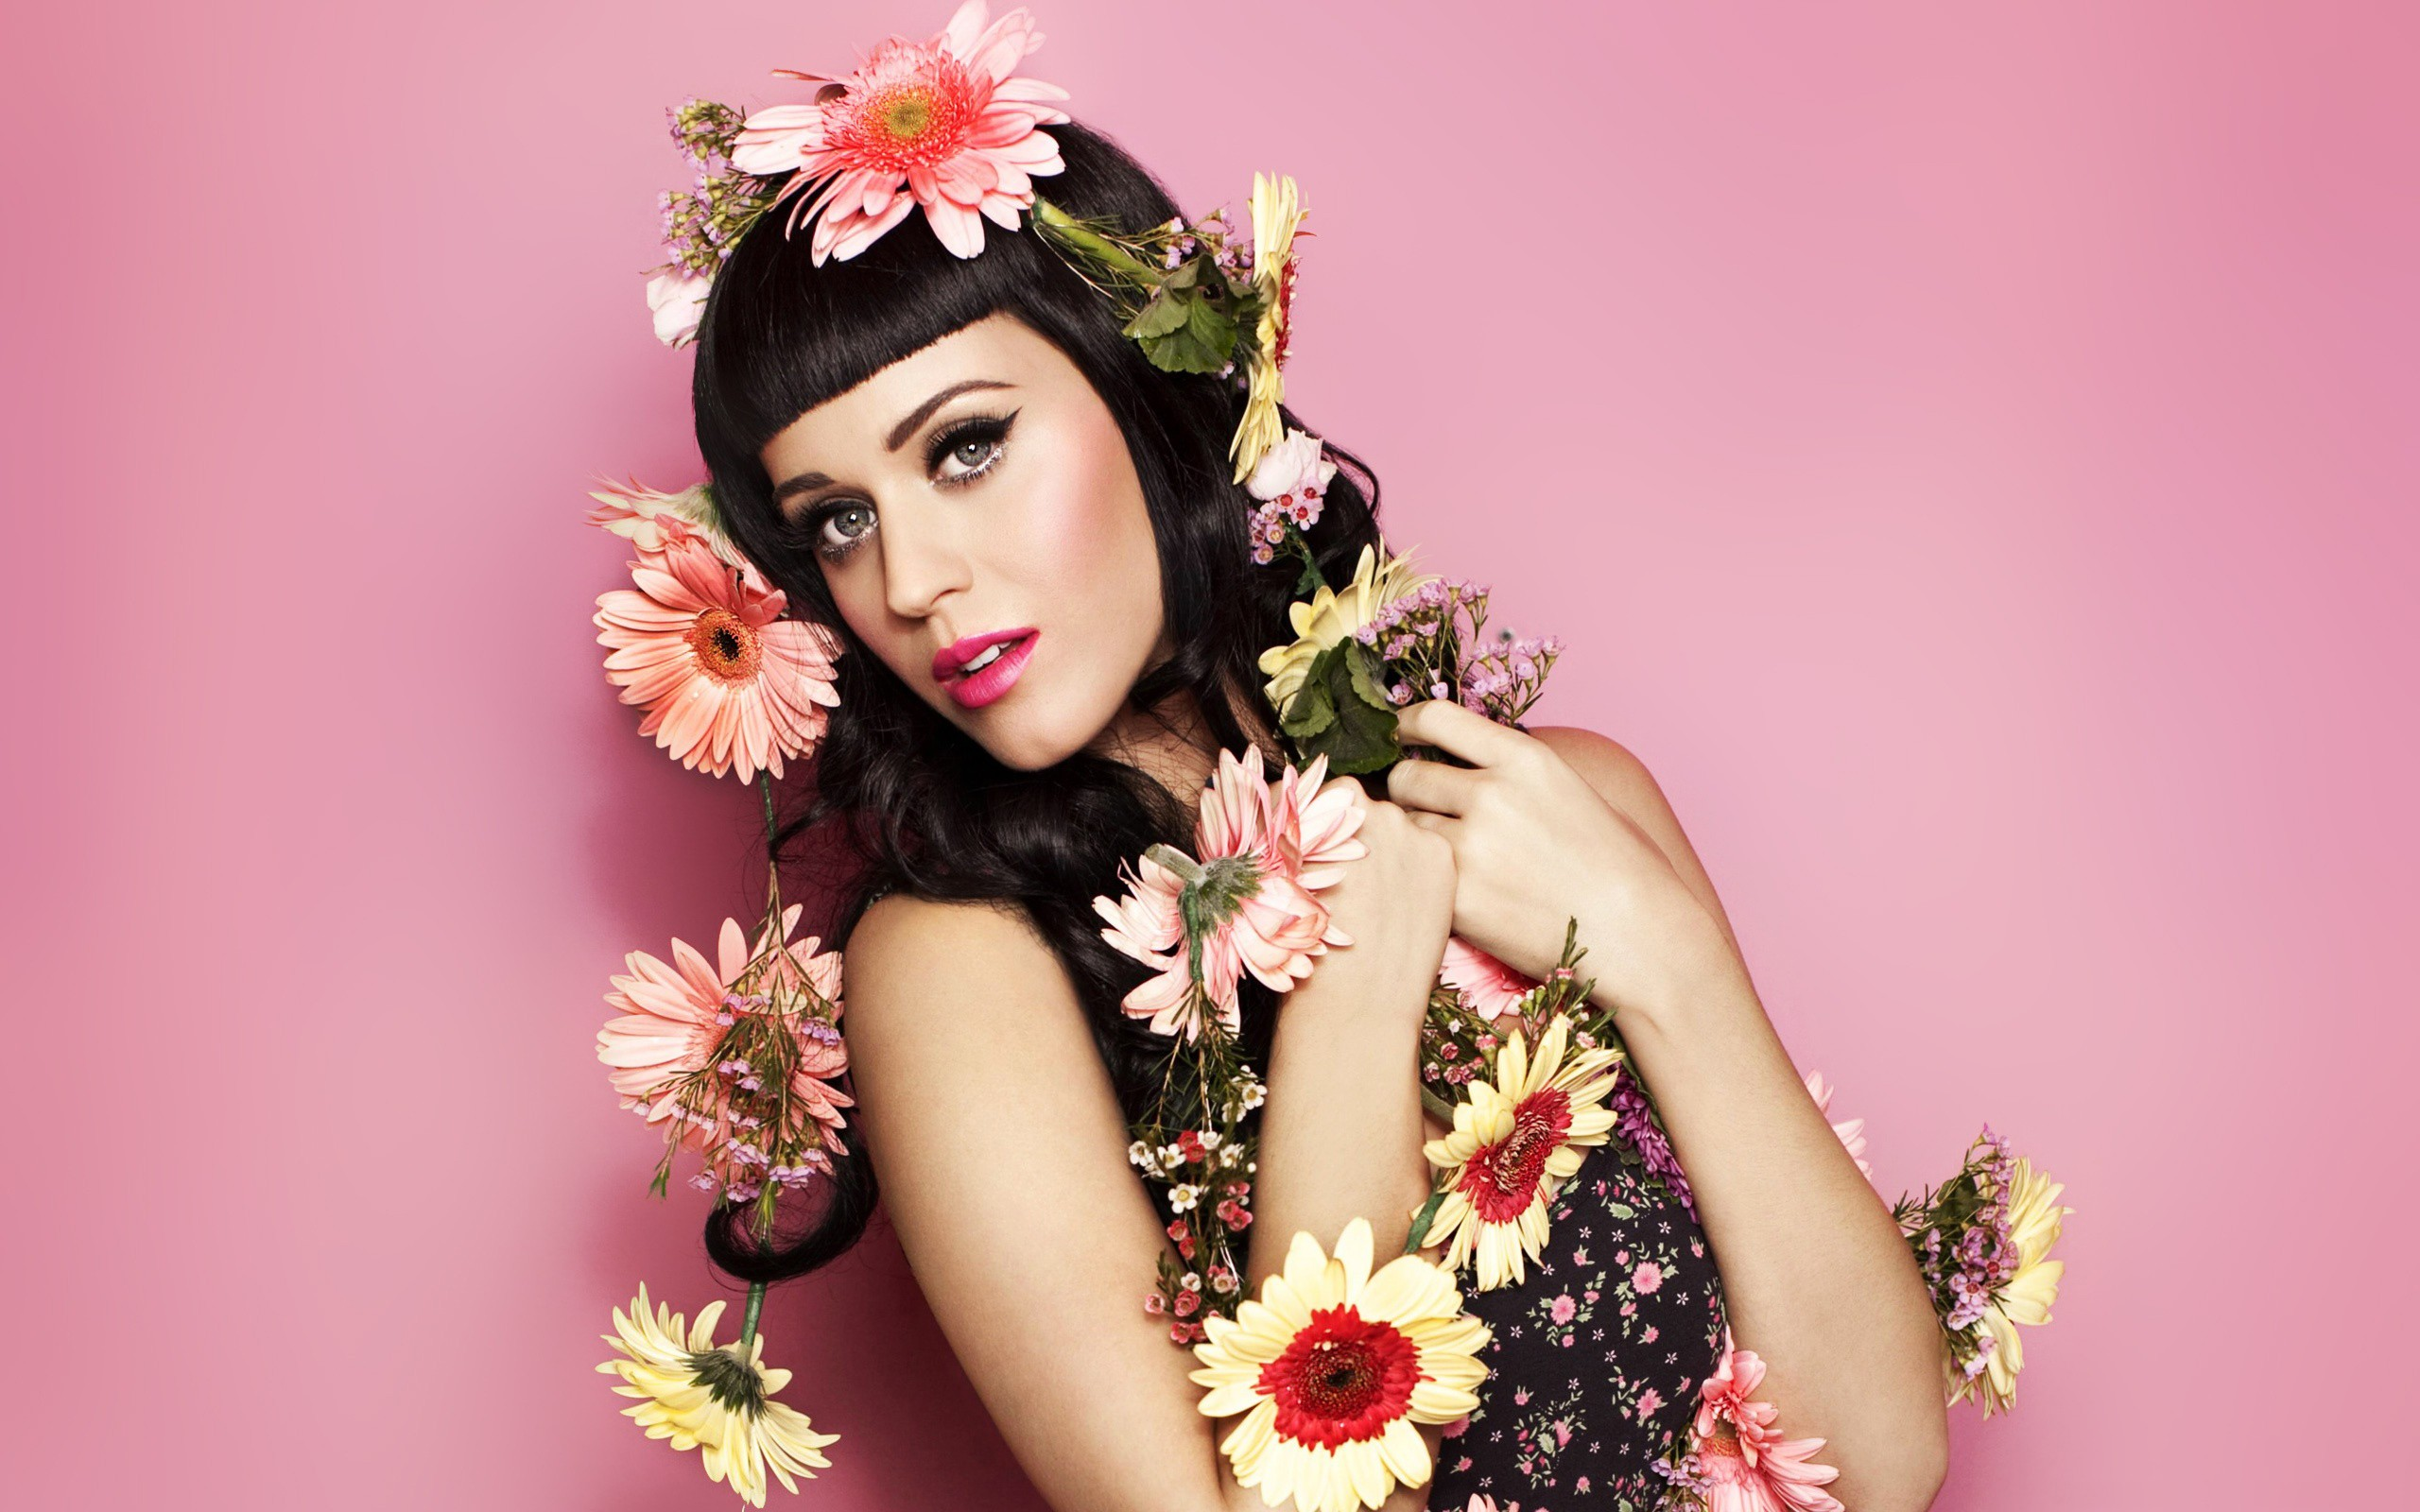 Katy Perry y bellas flores - 2560x1600